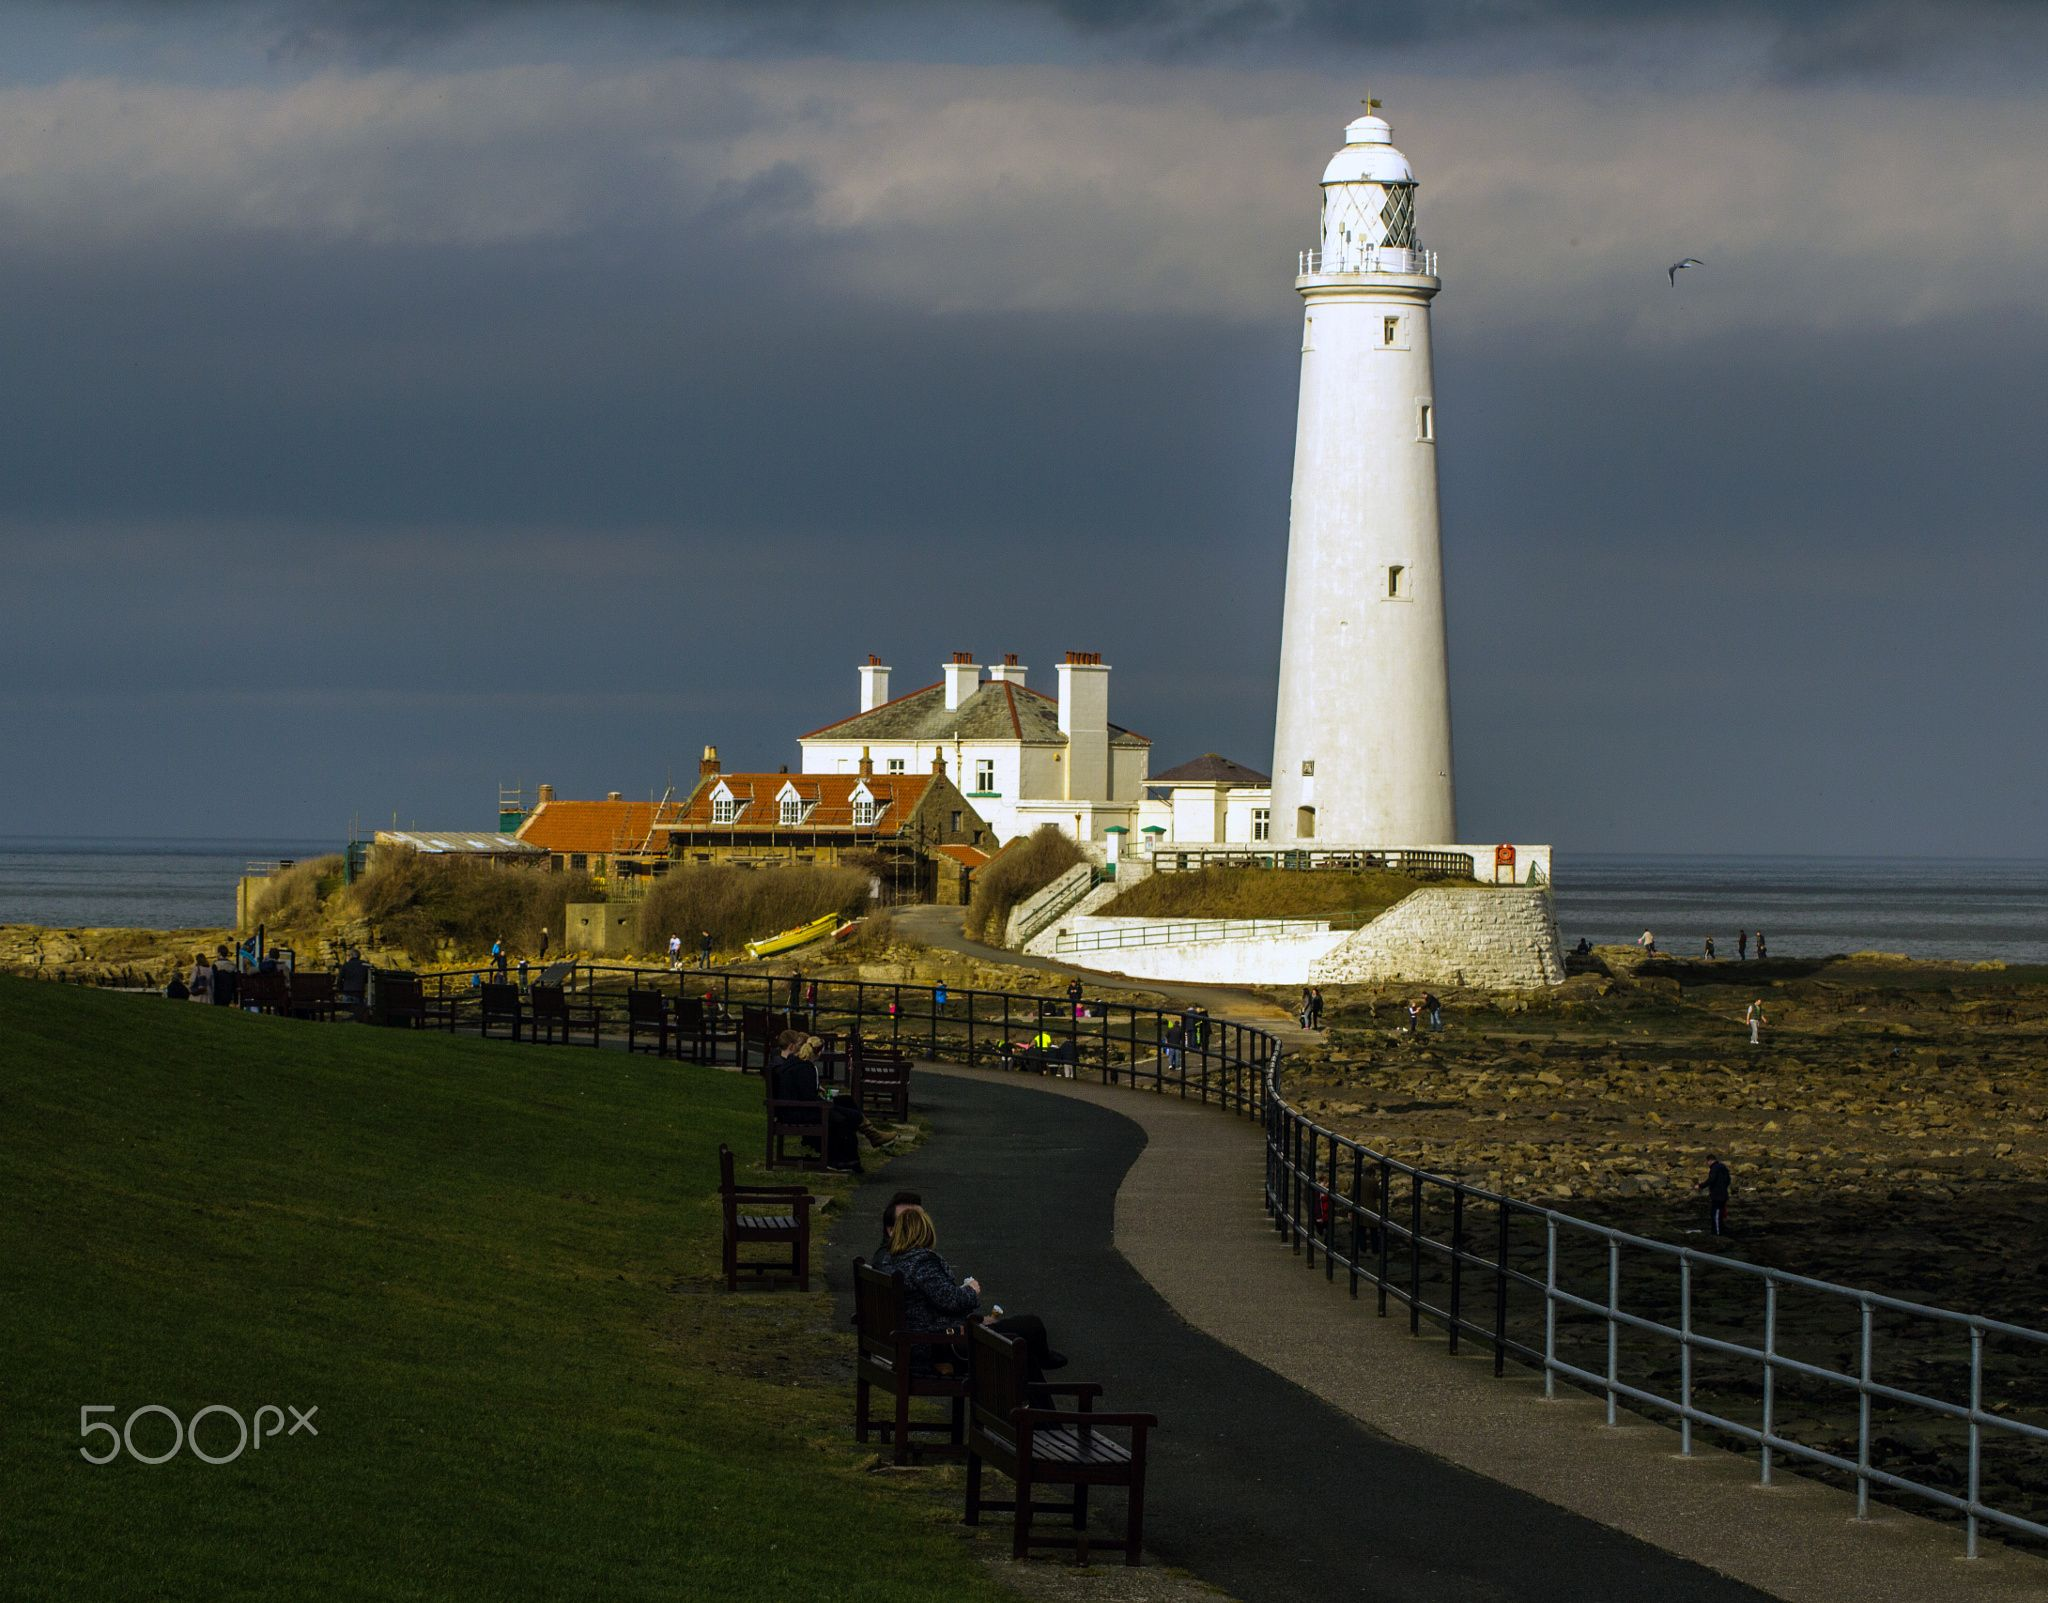 St Mary's Lighthouse - lighthouse at Whitley Bay